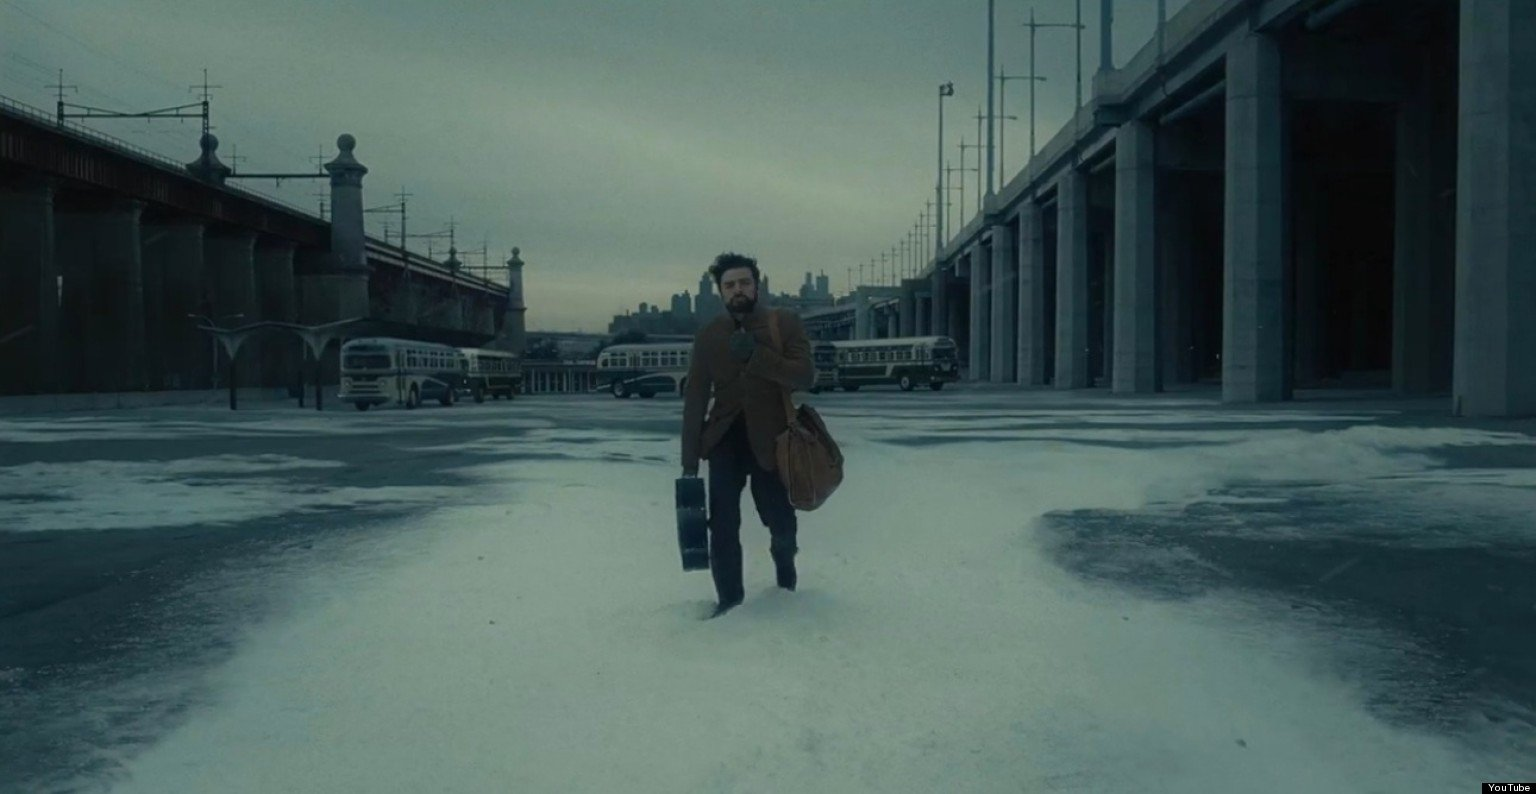 o-INSIDE-LLEWYN-DAVIS-TRAILER-facebook